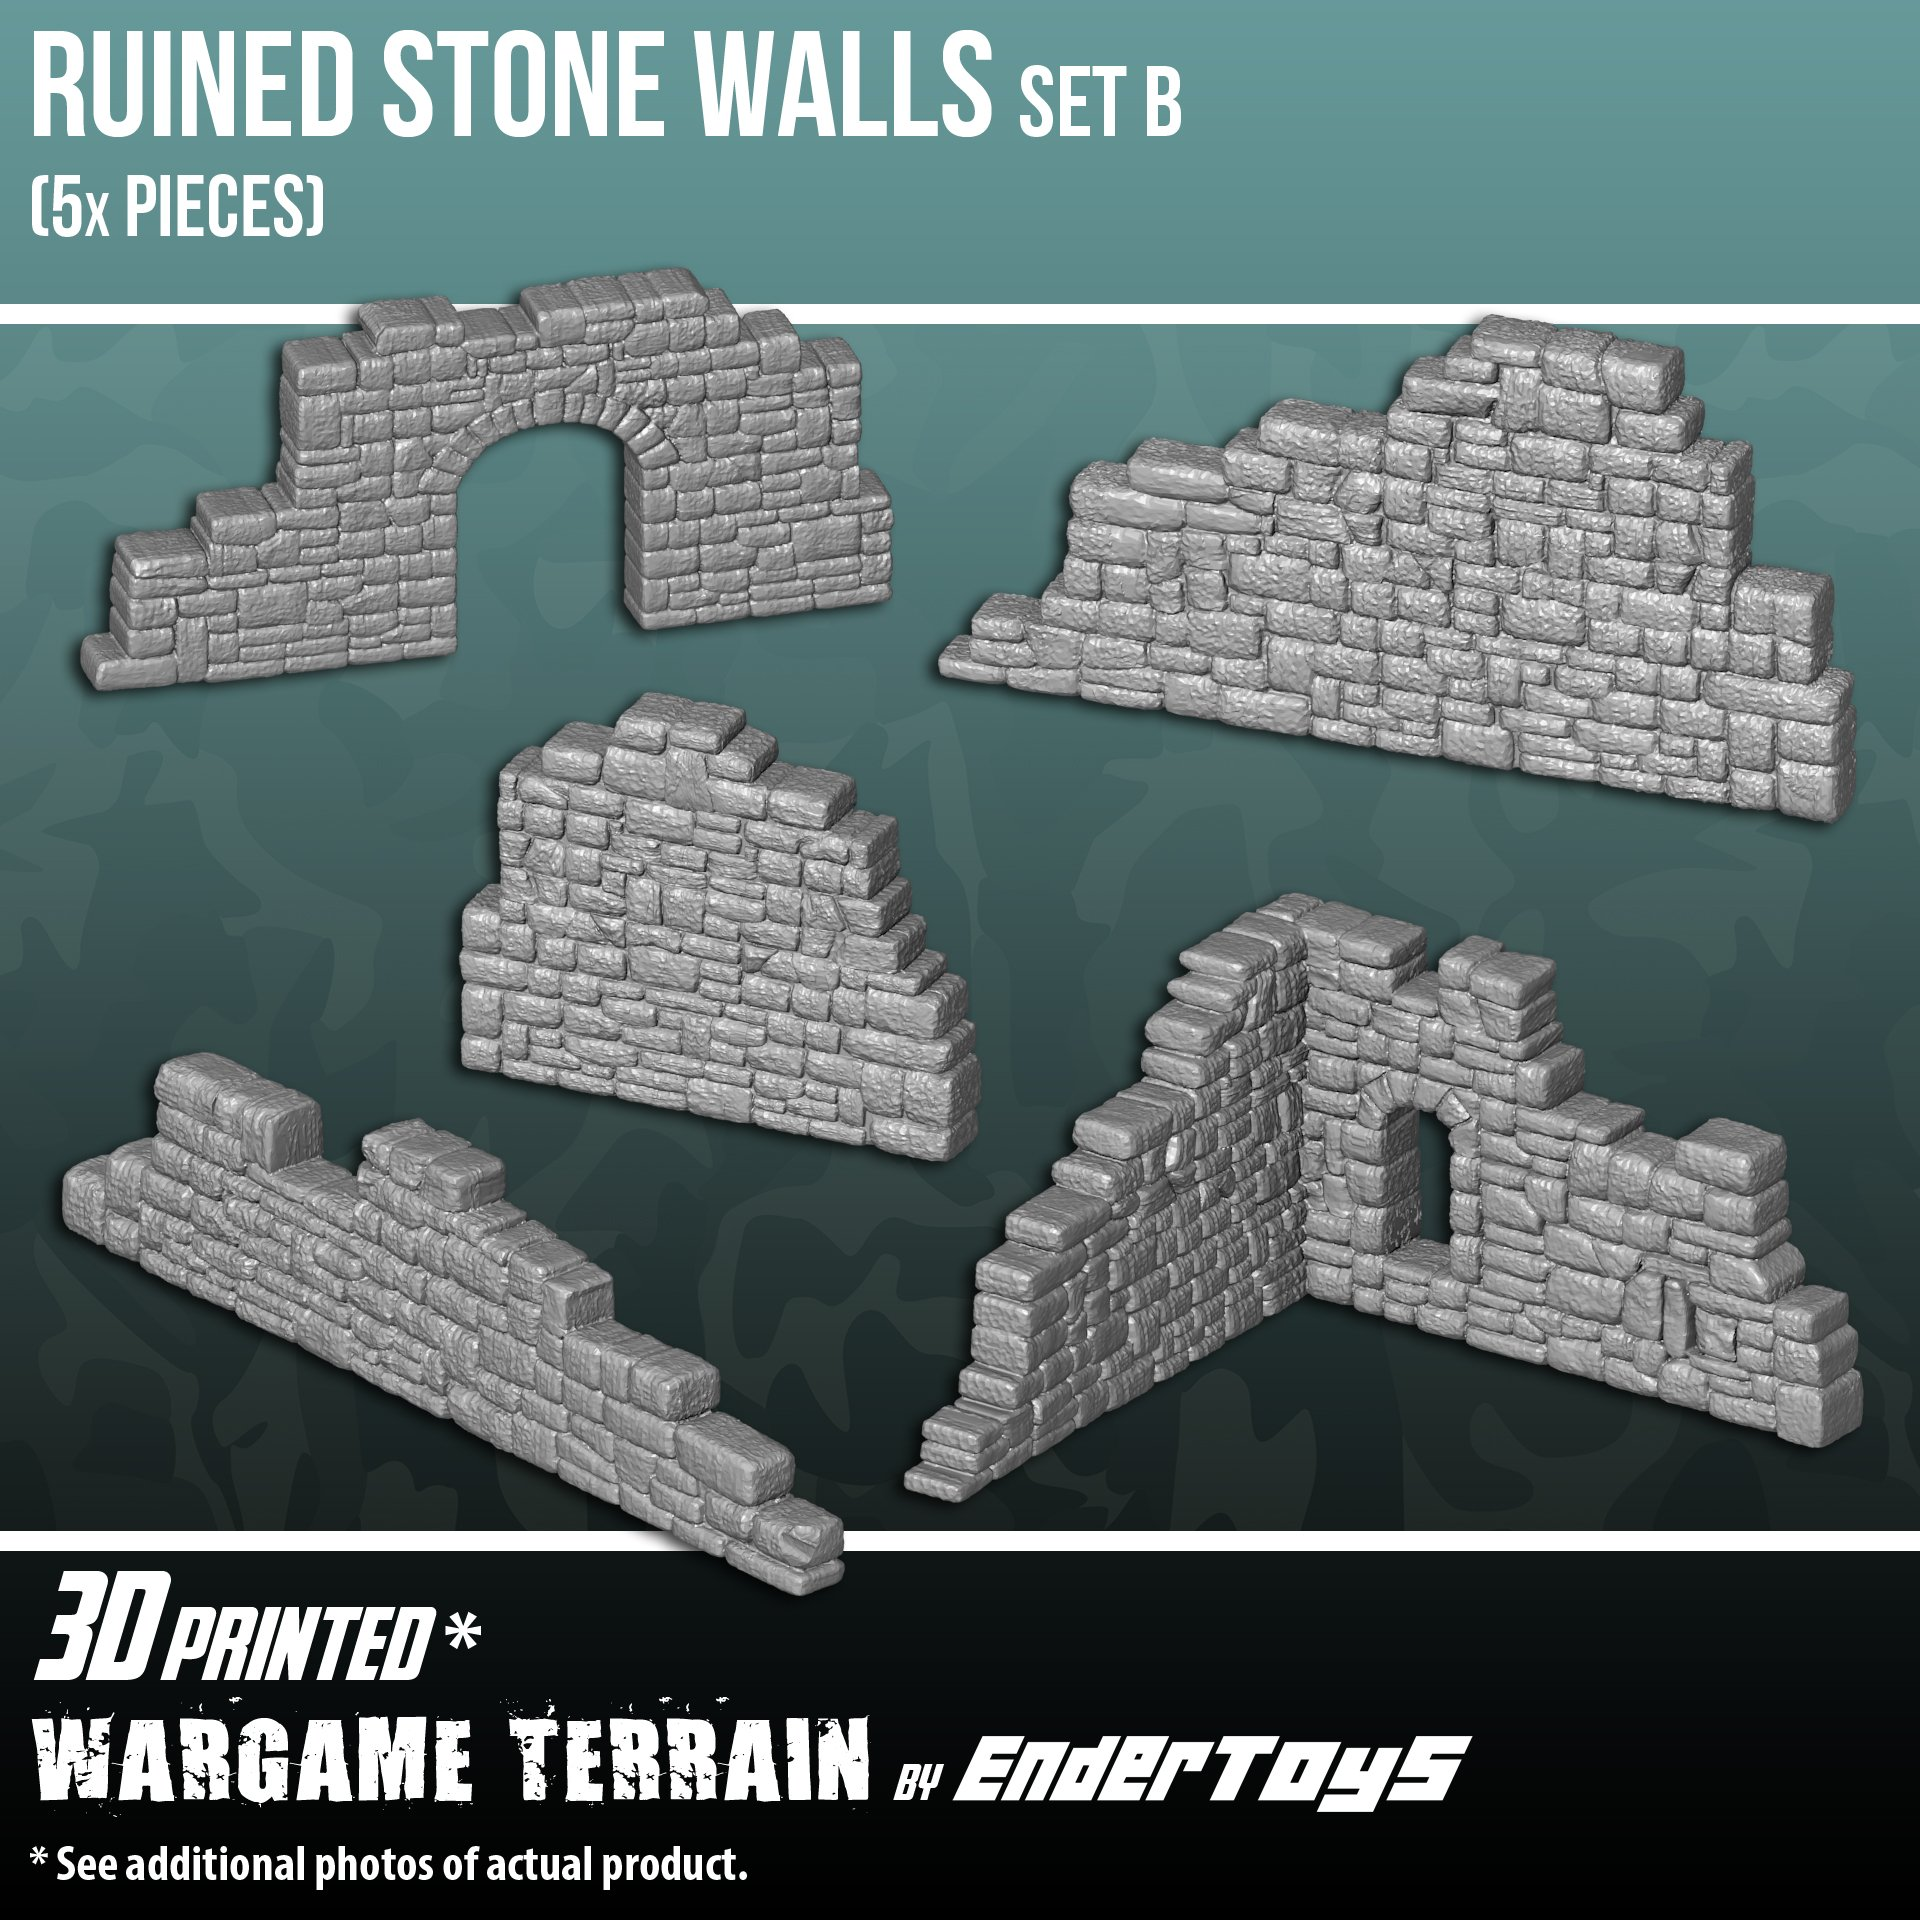 Ruined Stone Walls Set B, Terrain Scenery for Tabletop 28mm Miniatures Wargame, 3D Printed and Paintable, EnderToys